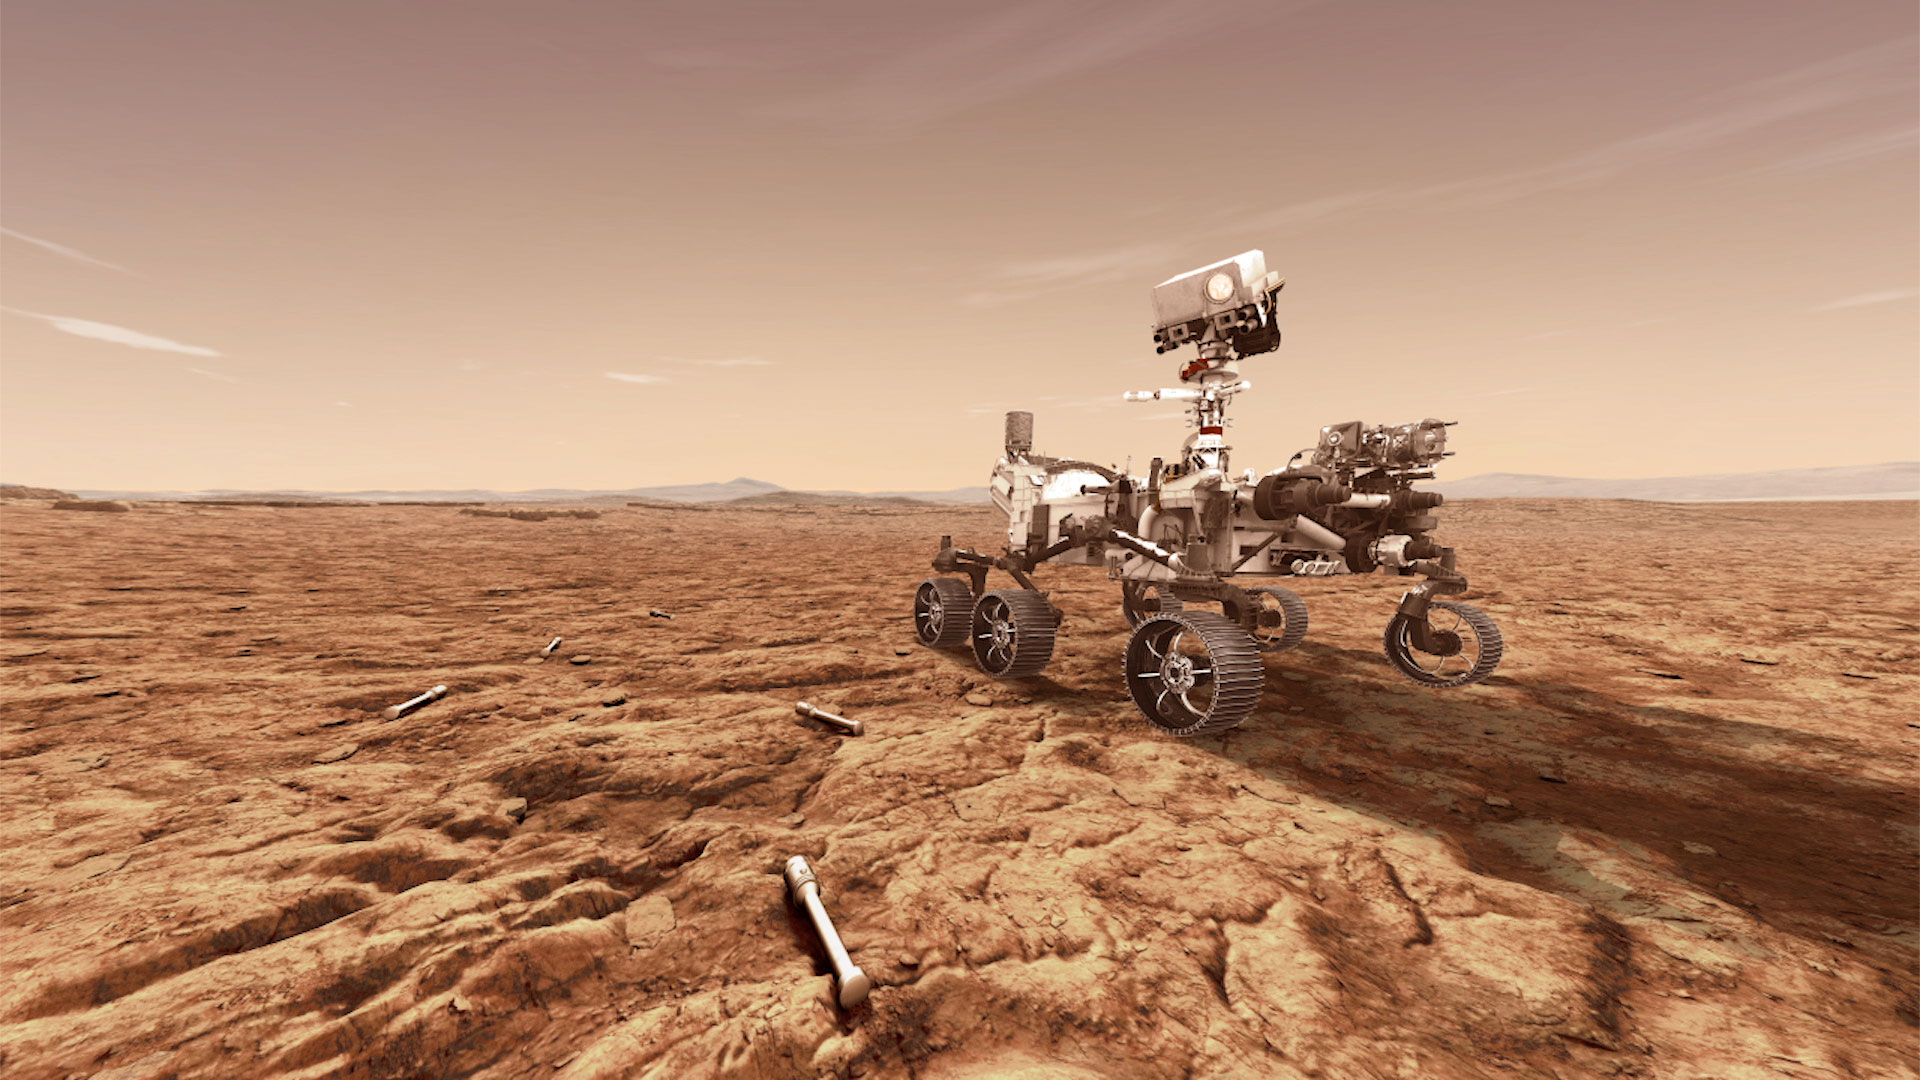 A rendering of NASA's Mars 2020 rover, which will store rock samples during future missions. (Photo: NASA)